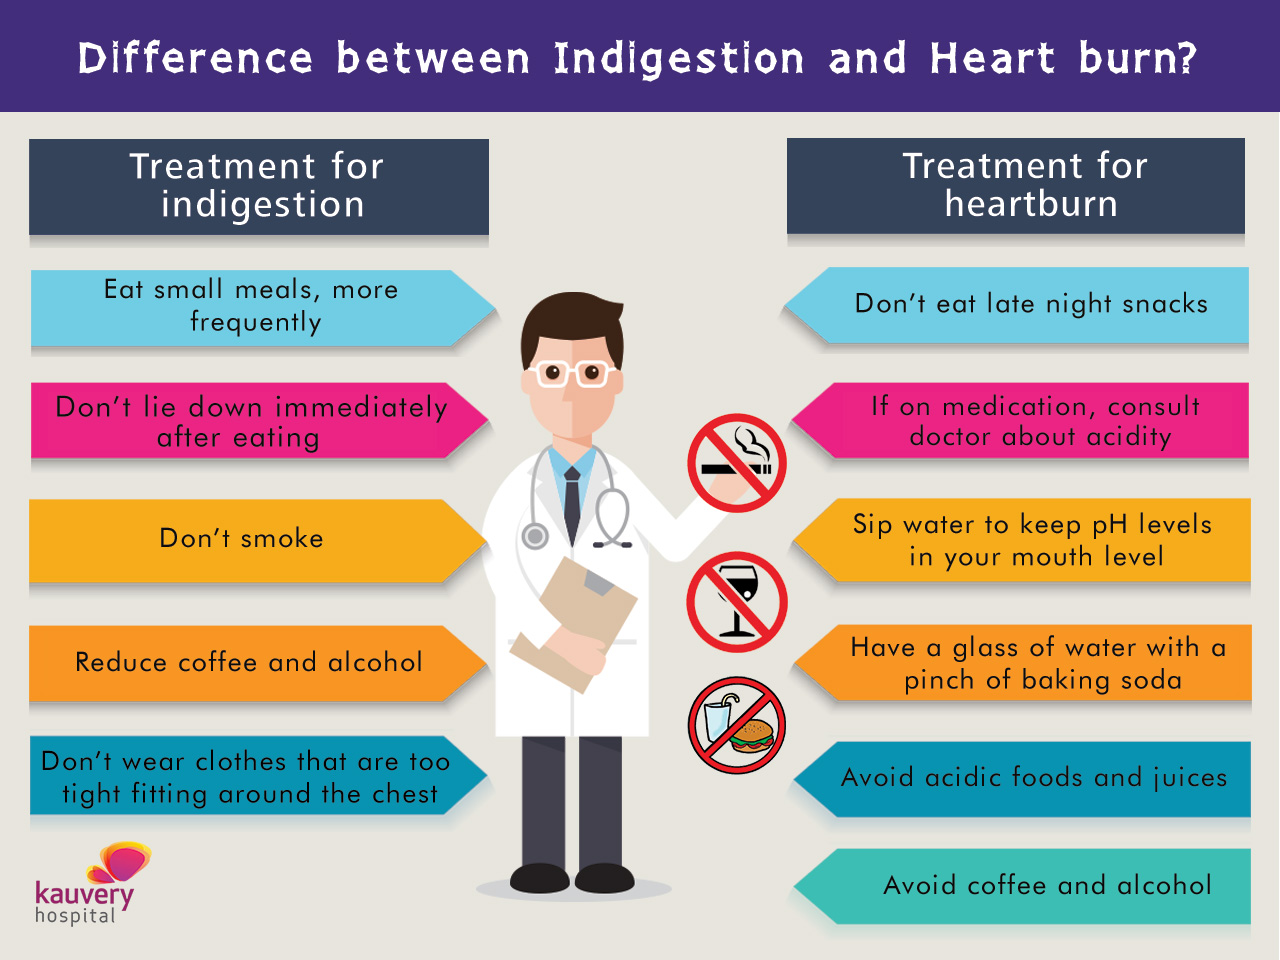 Treatment for Indigestion and Heartburn